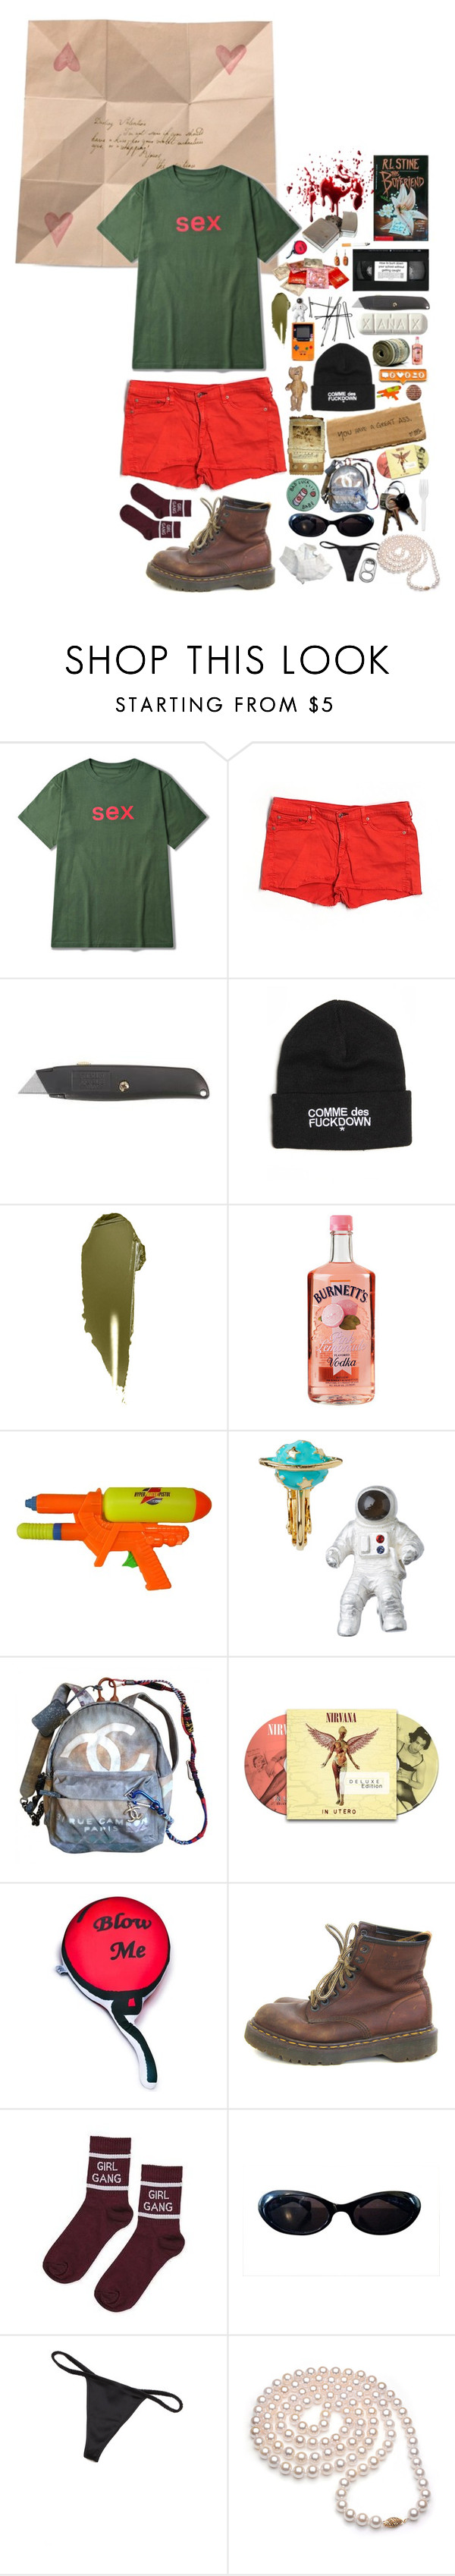 """""""SEXEXEX"""" by anna-pensky ❤ liked on Polyvore featuring Une, rag & bone/JEAN, BOBBY, SSUR, NARS Cosmetics, Scully, Chanel, O-Mighty, Dr. Martens and Topshop"""